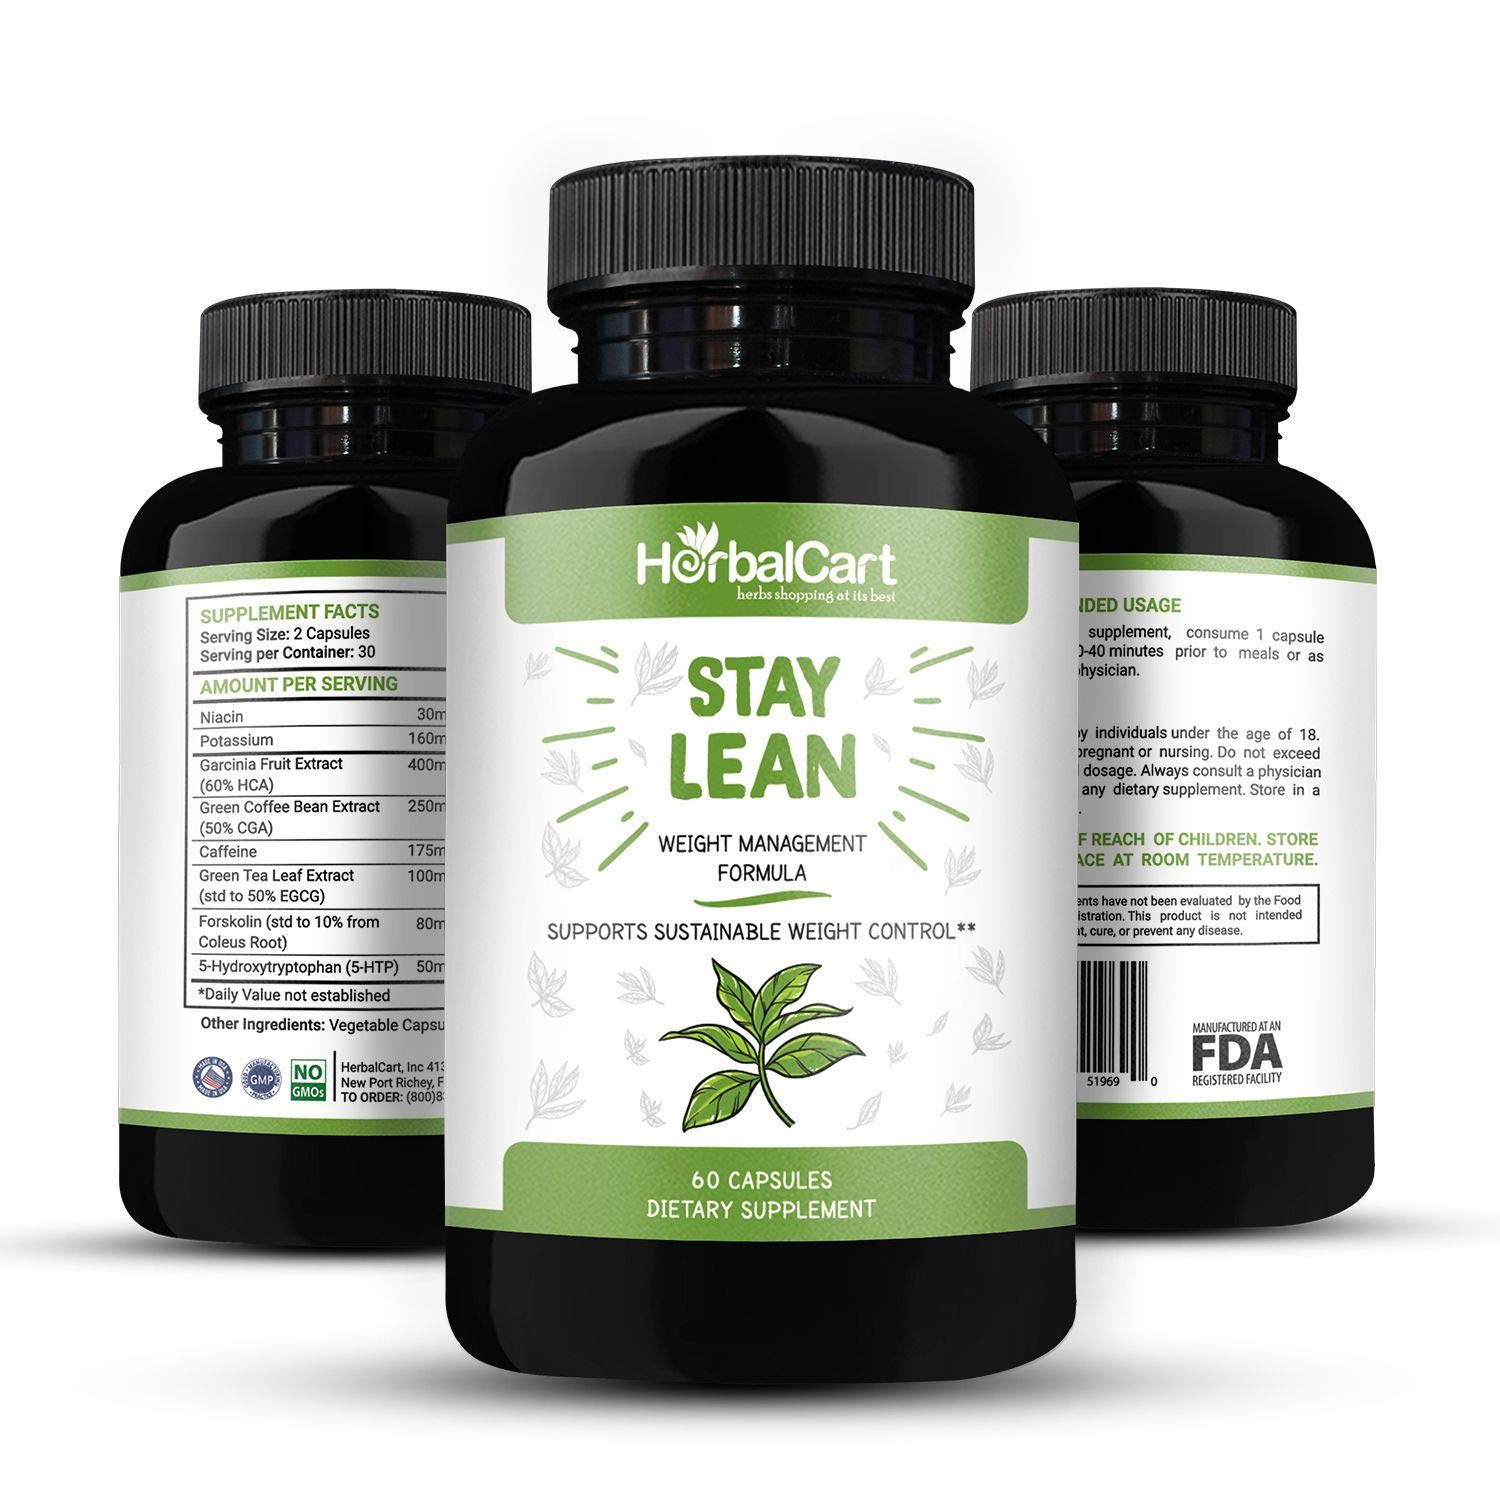 HerbalCart - Weight Loss Pills - Stay Lean for Men & Women - Formulated with [Niacin, 5-Hydroxytryptophan, Caffeine, Green Coffee Bean Extract & More Natural Ingredients] 60 Capsules